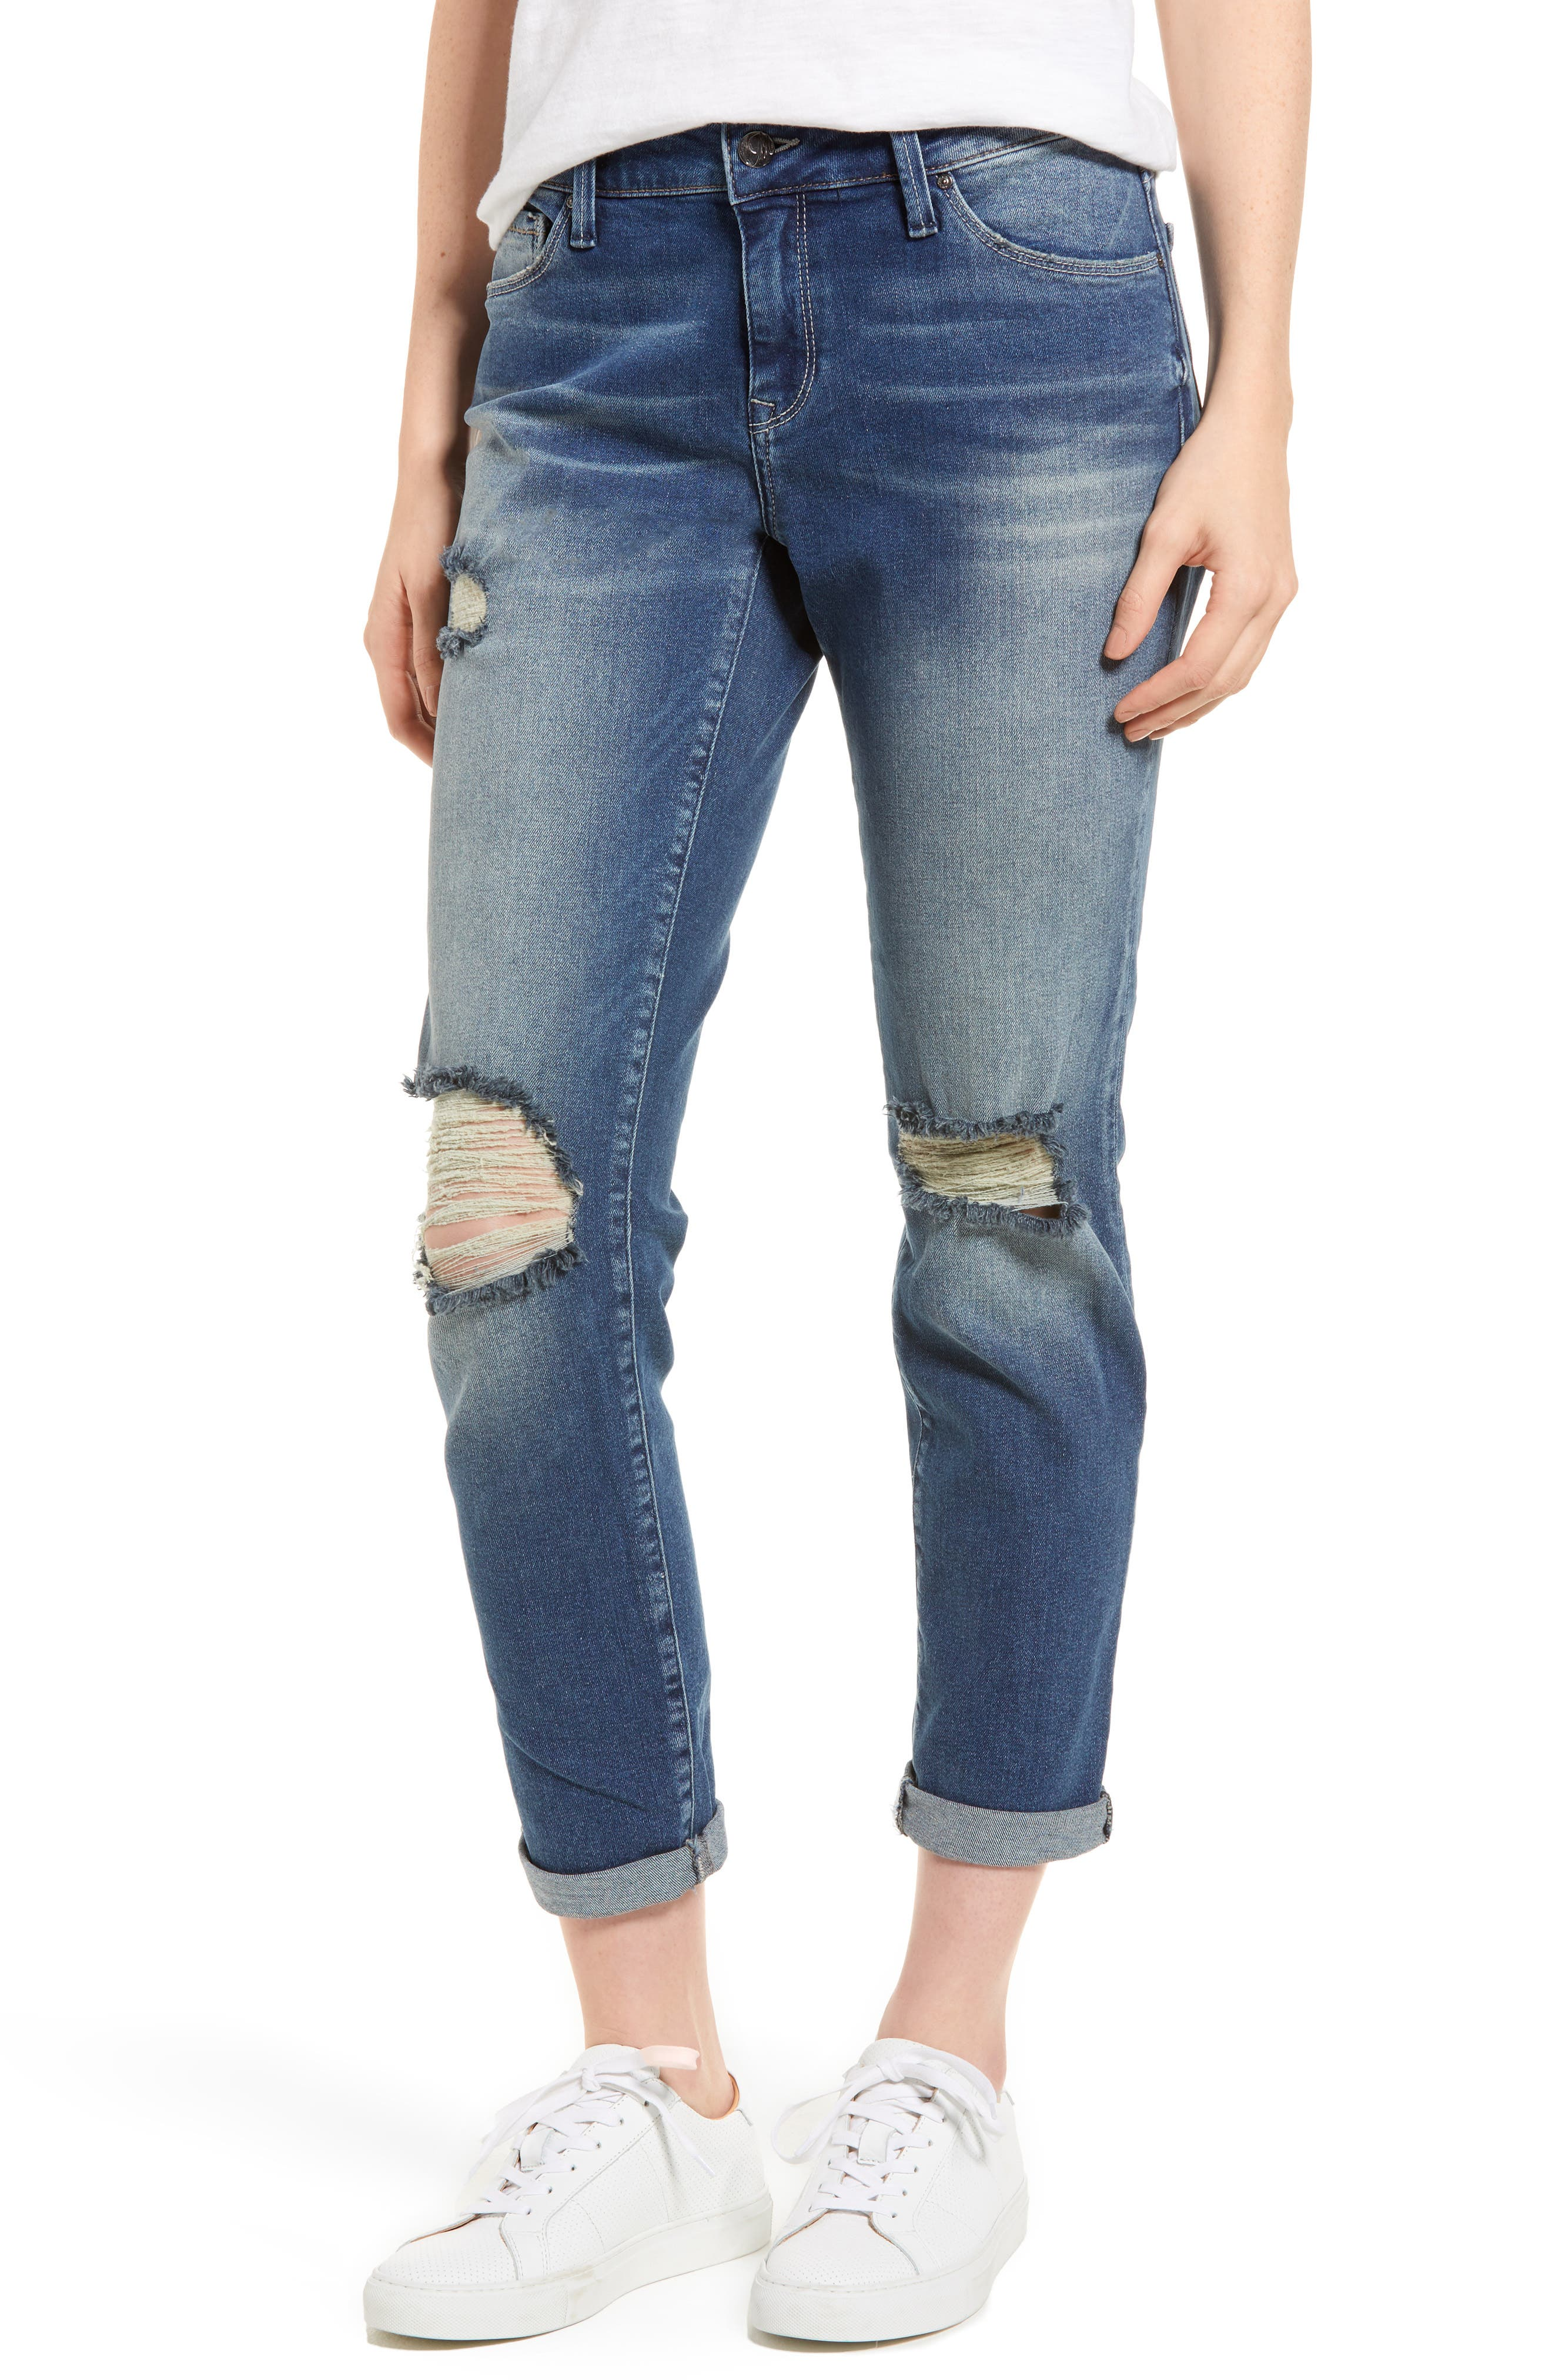 Ada Ripped Boyfriend Jeans,                             Main thumbnail 1, color,                             Mid Ripped Vintage